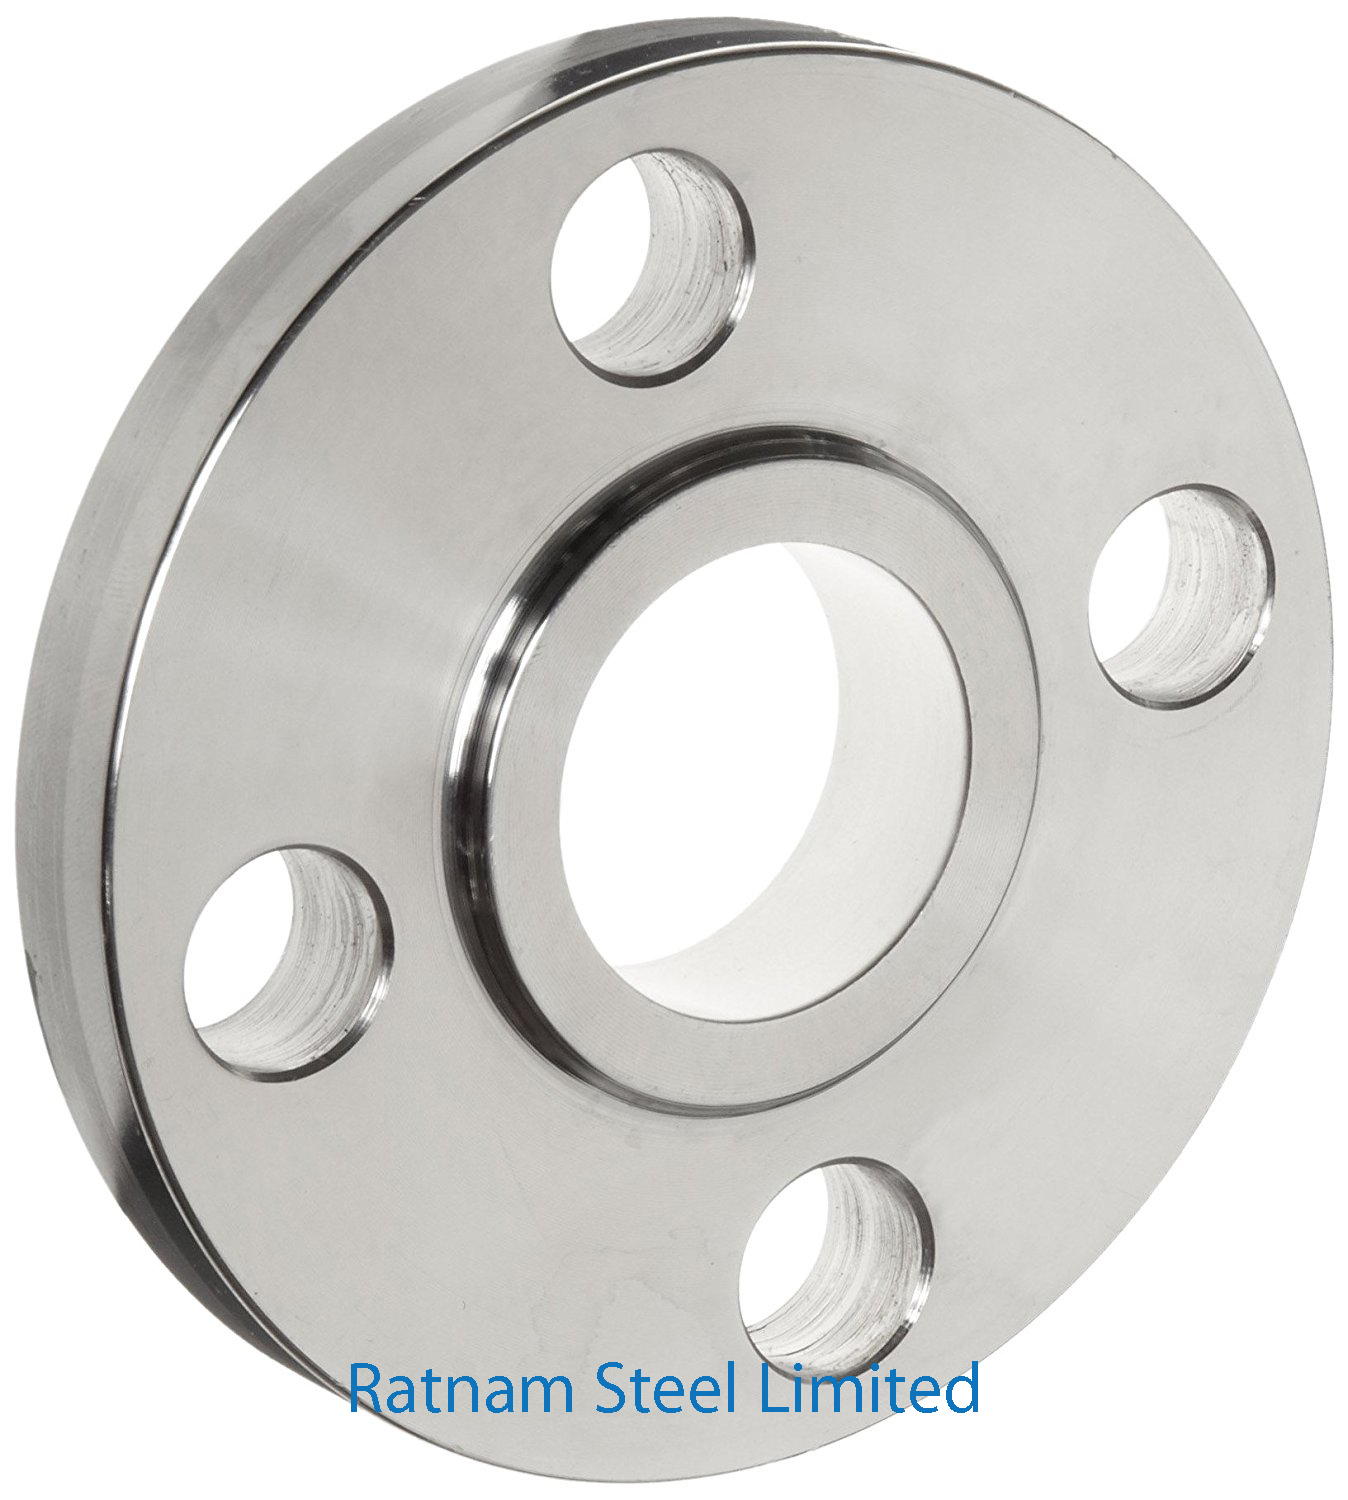 Incoloy ASTM B564 Alloy 20 Flange slip on manufacturer in India